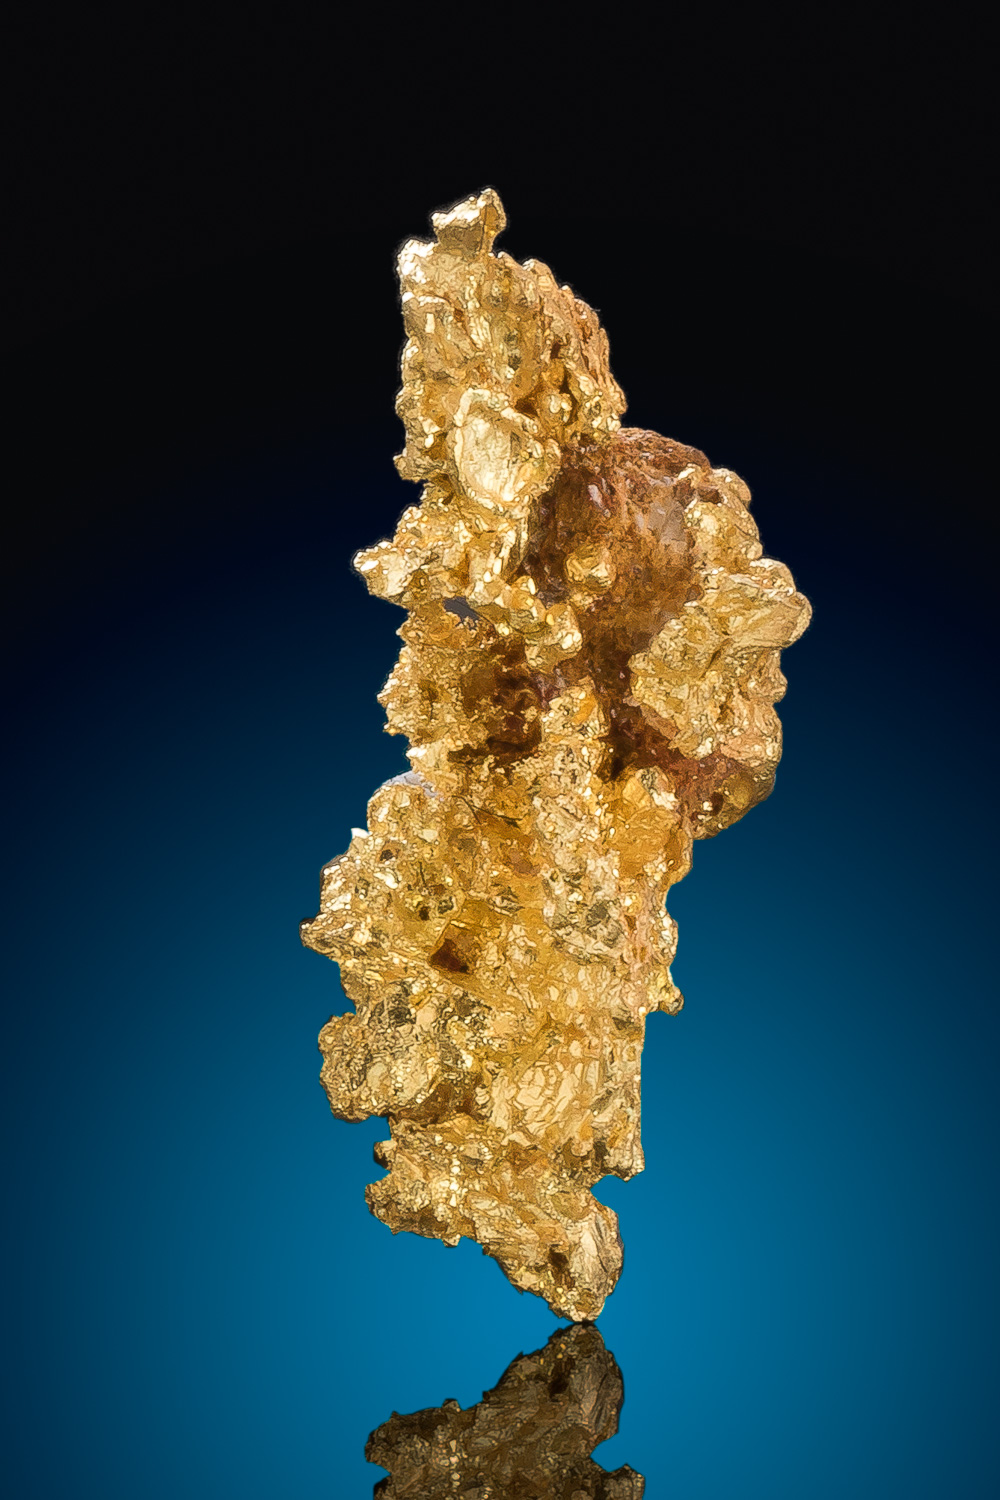 Sharp and Long Crystalline Gold Nugget from the Eagles Nest Mine